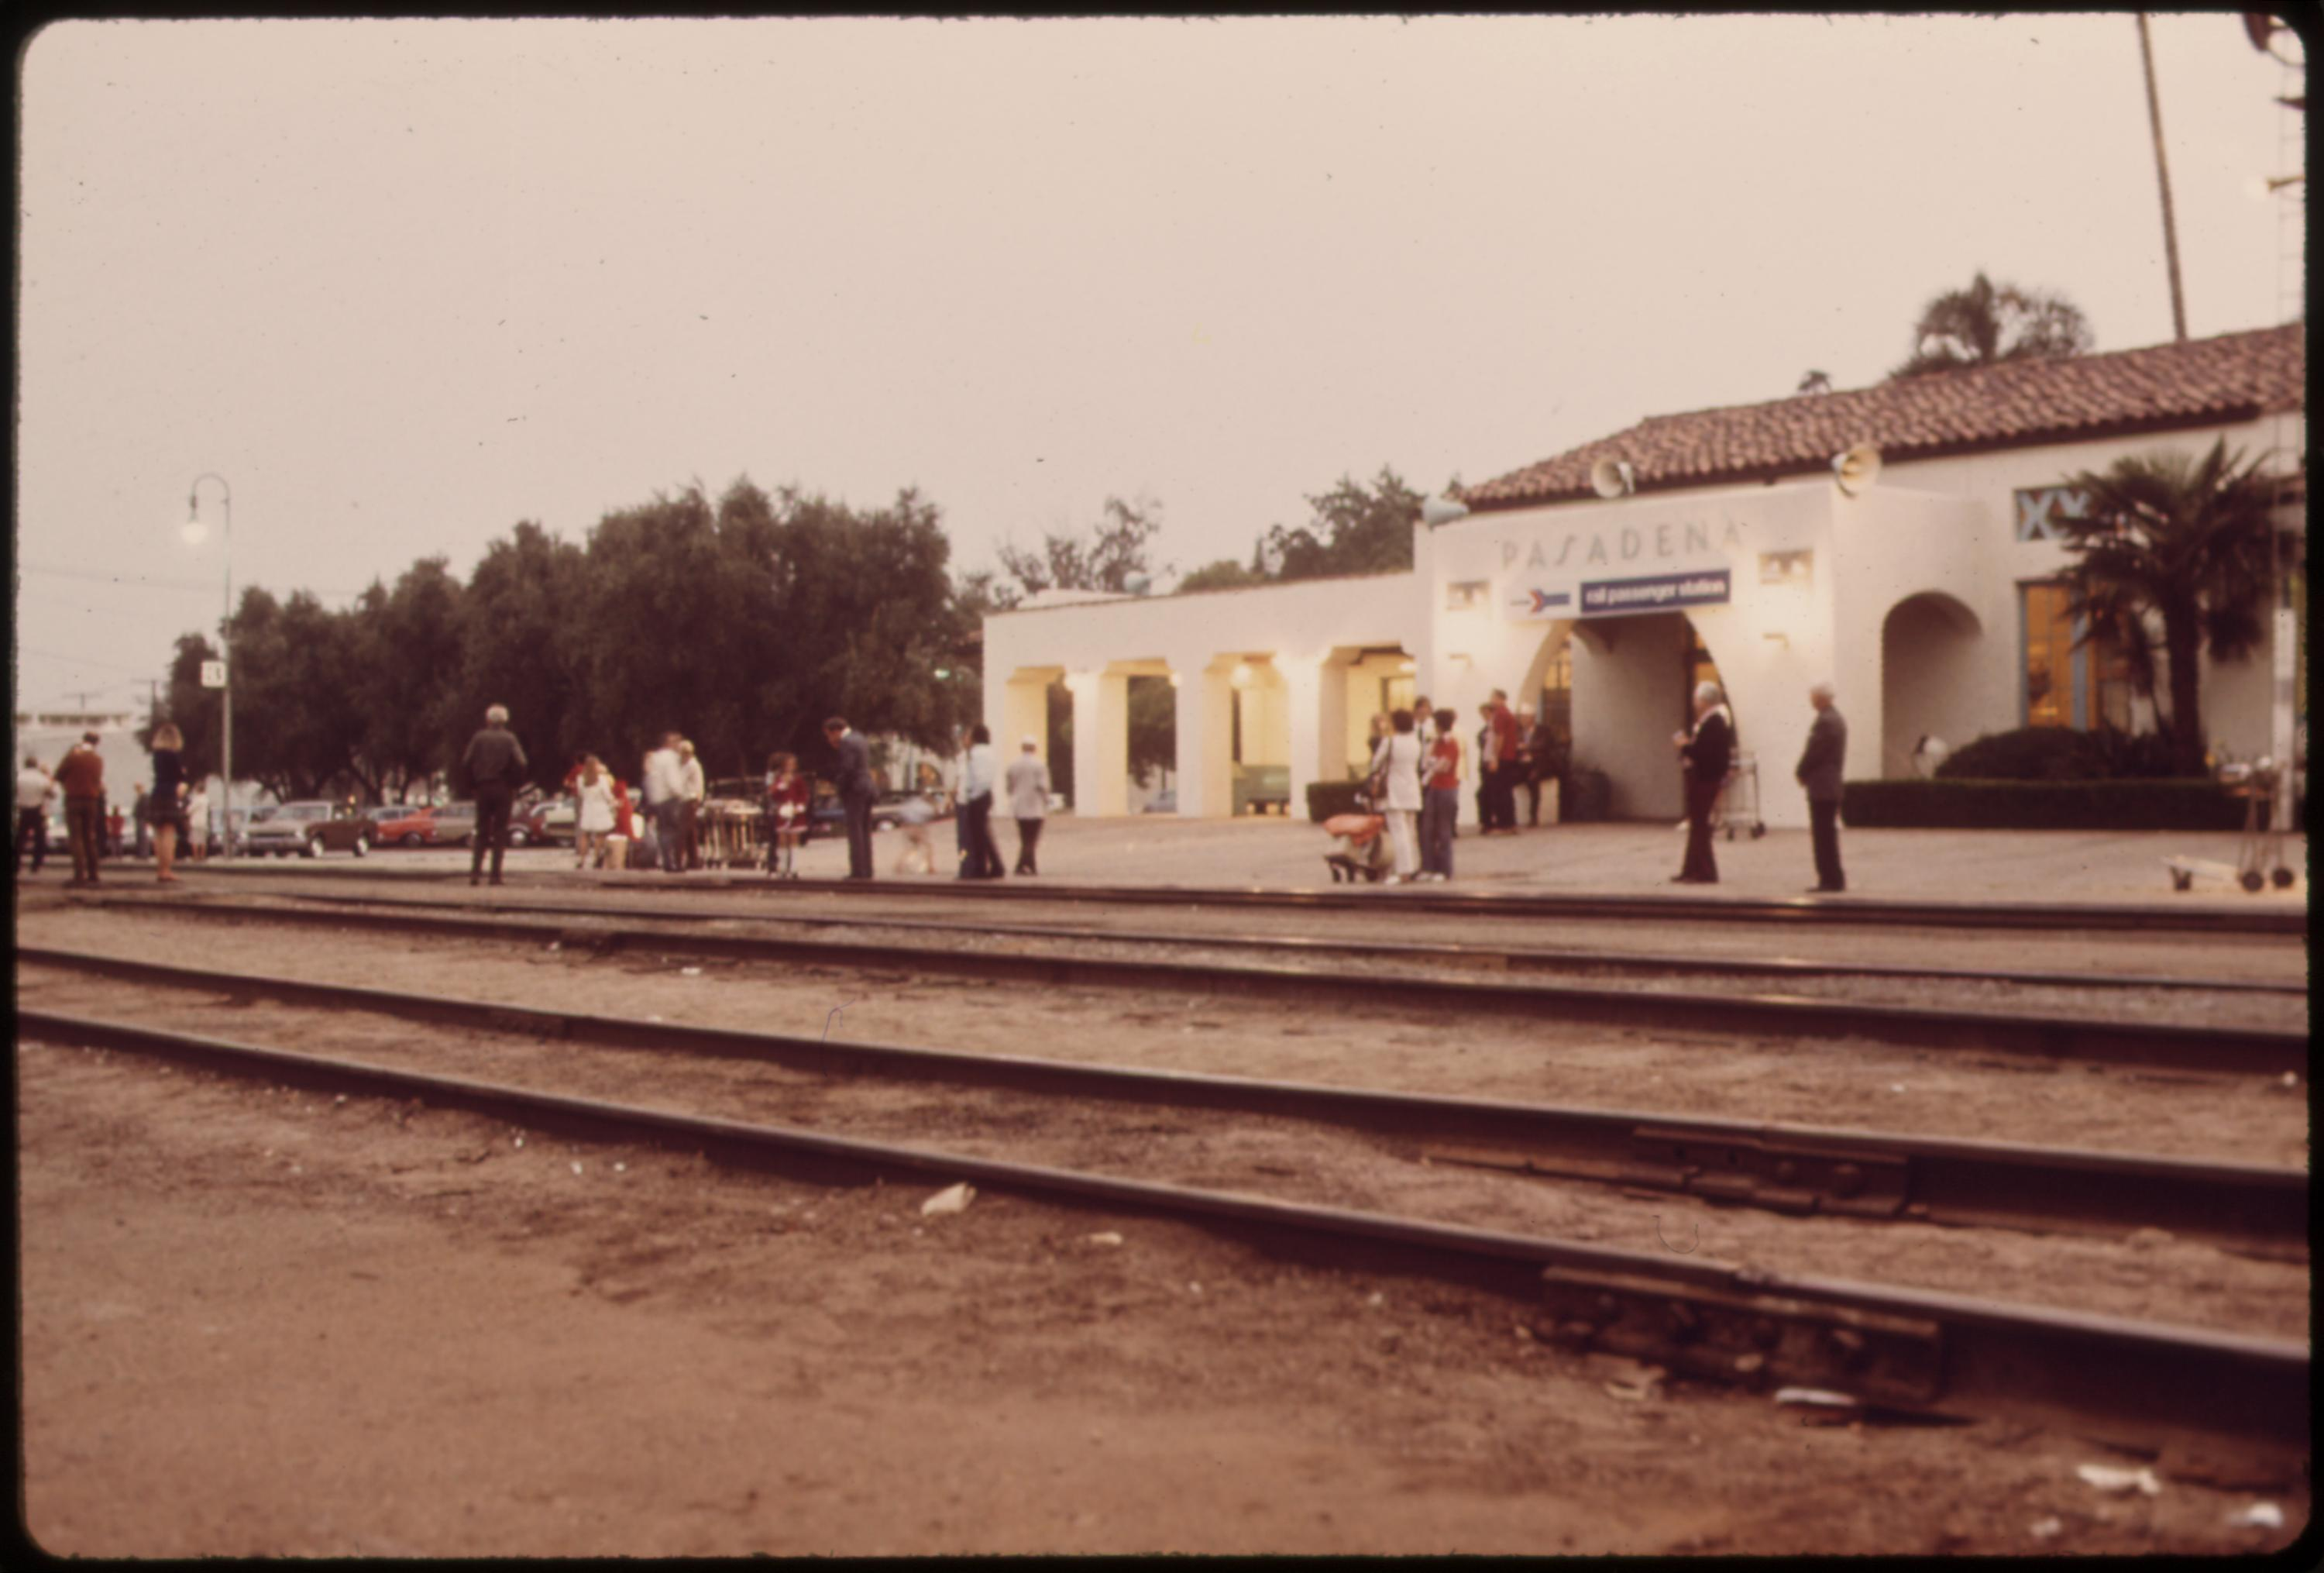 Passengers at the Pasadena, California, train station waiting for the Southwest Limited, formerly called the super chief, headed to Chicago, June 1974